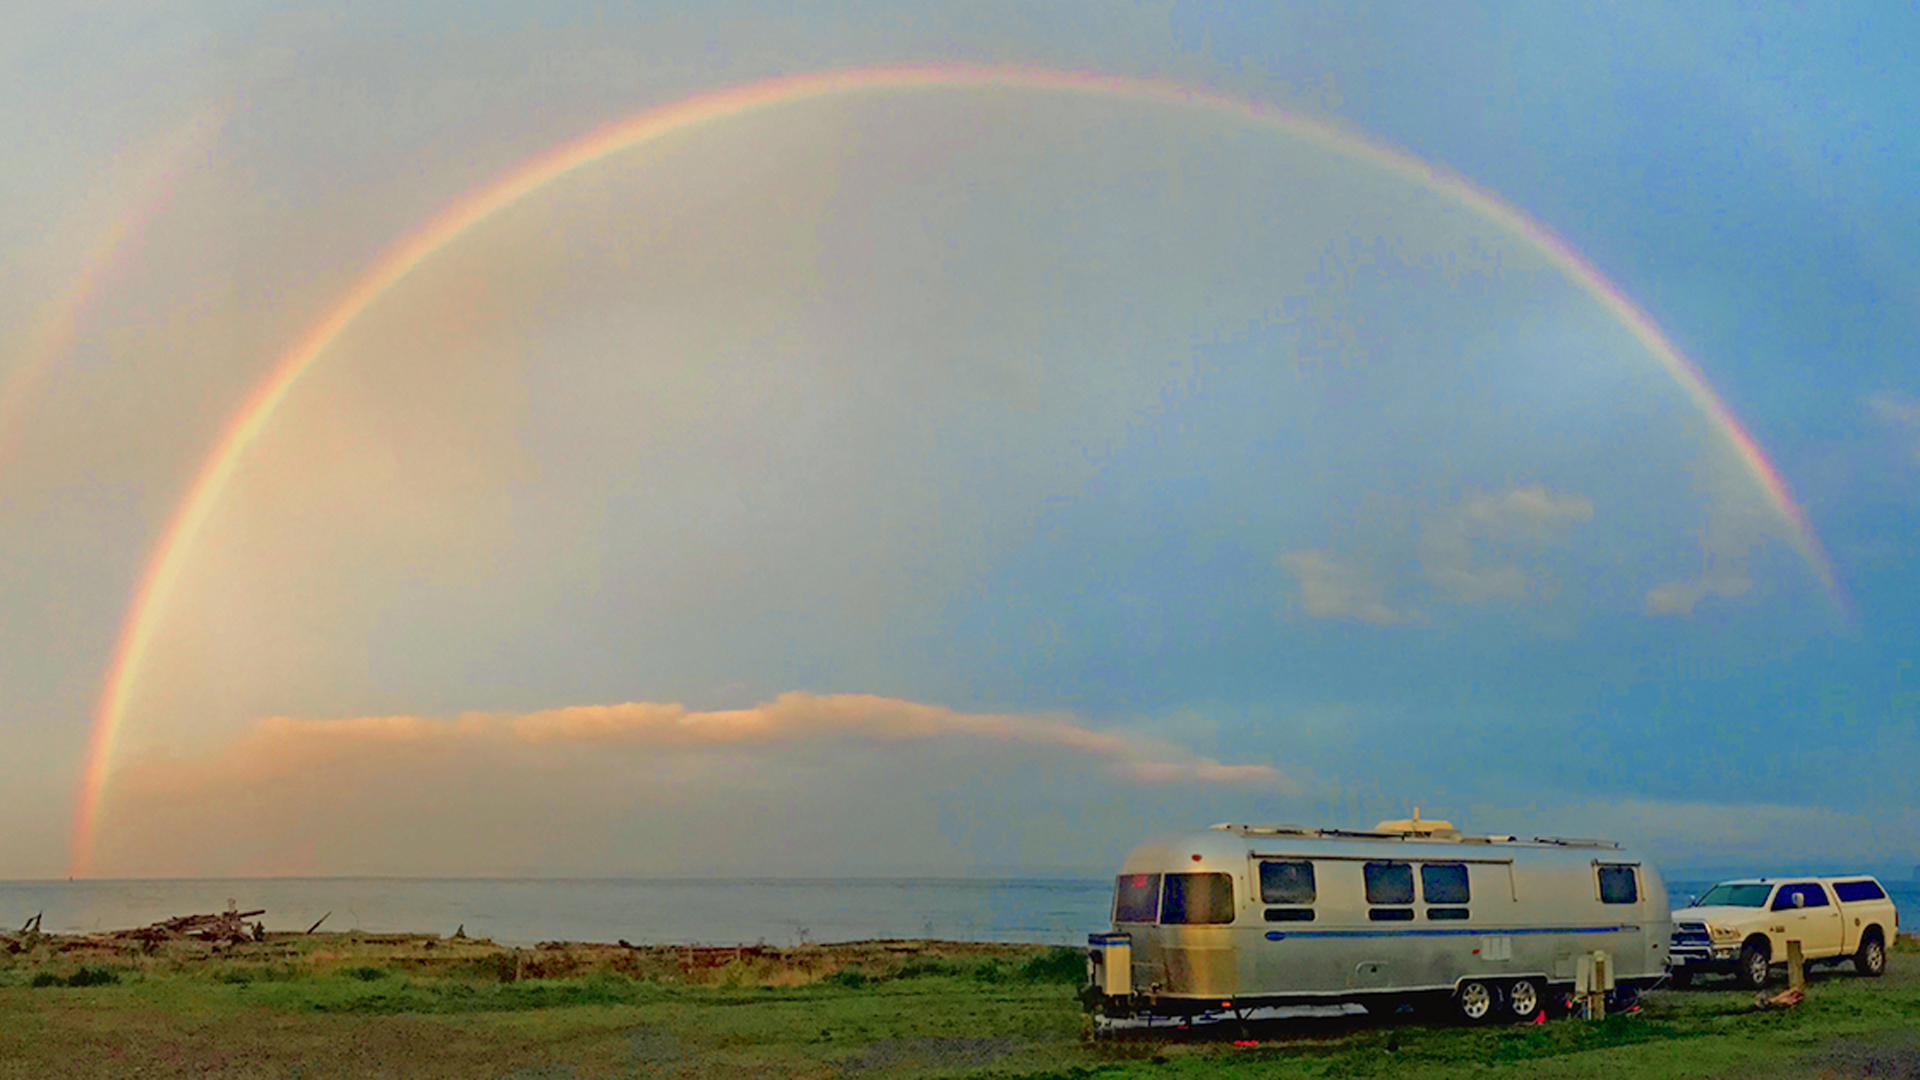 Airstream parked with a rainbow in the sky